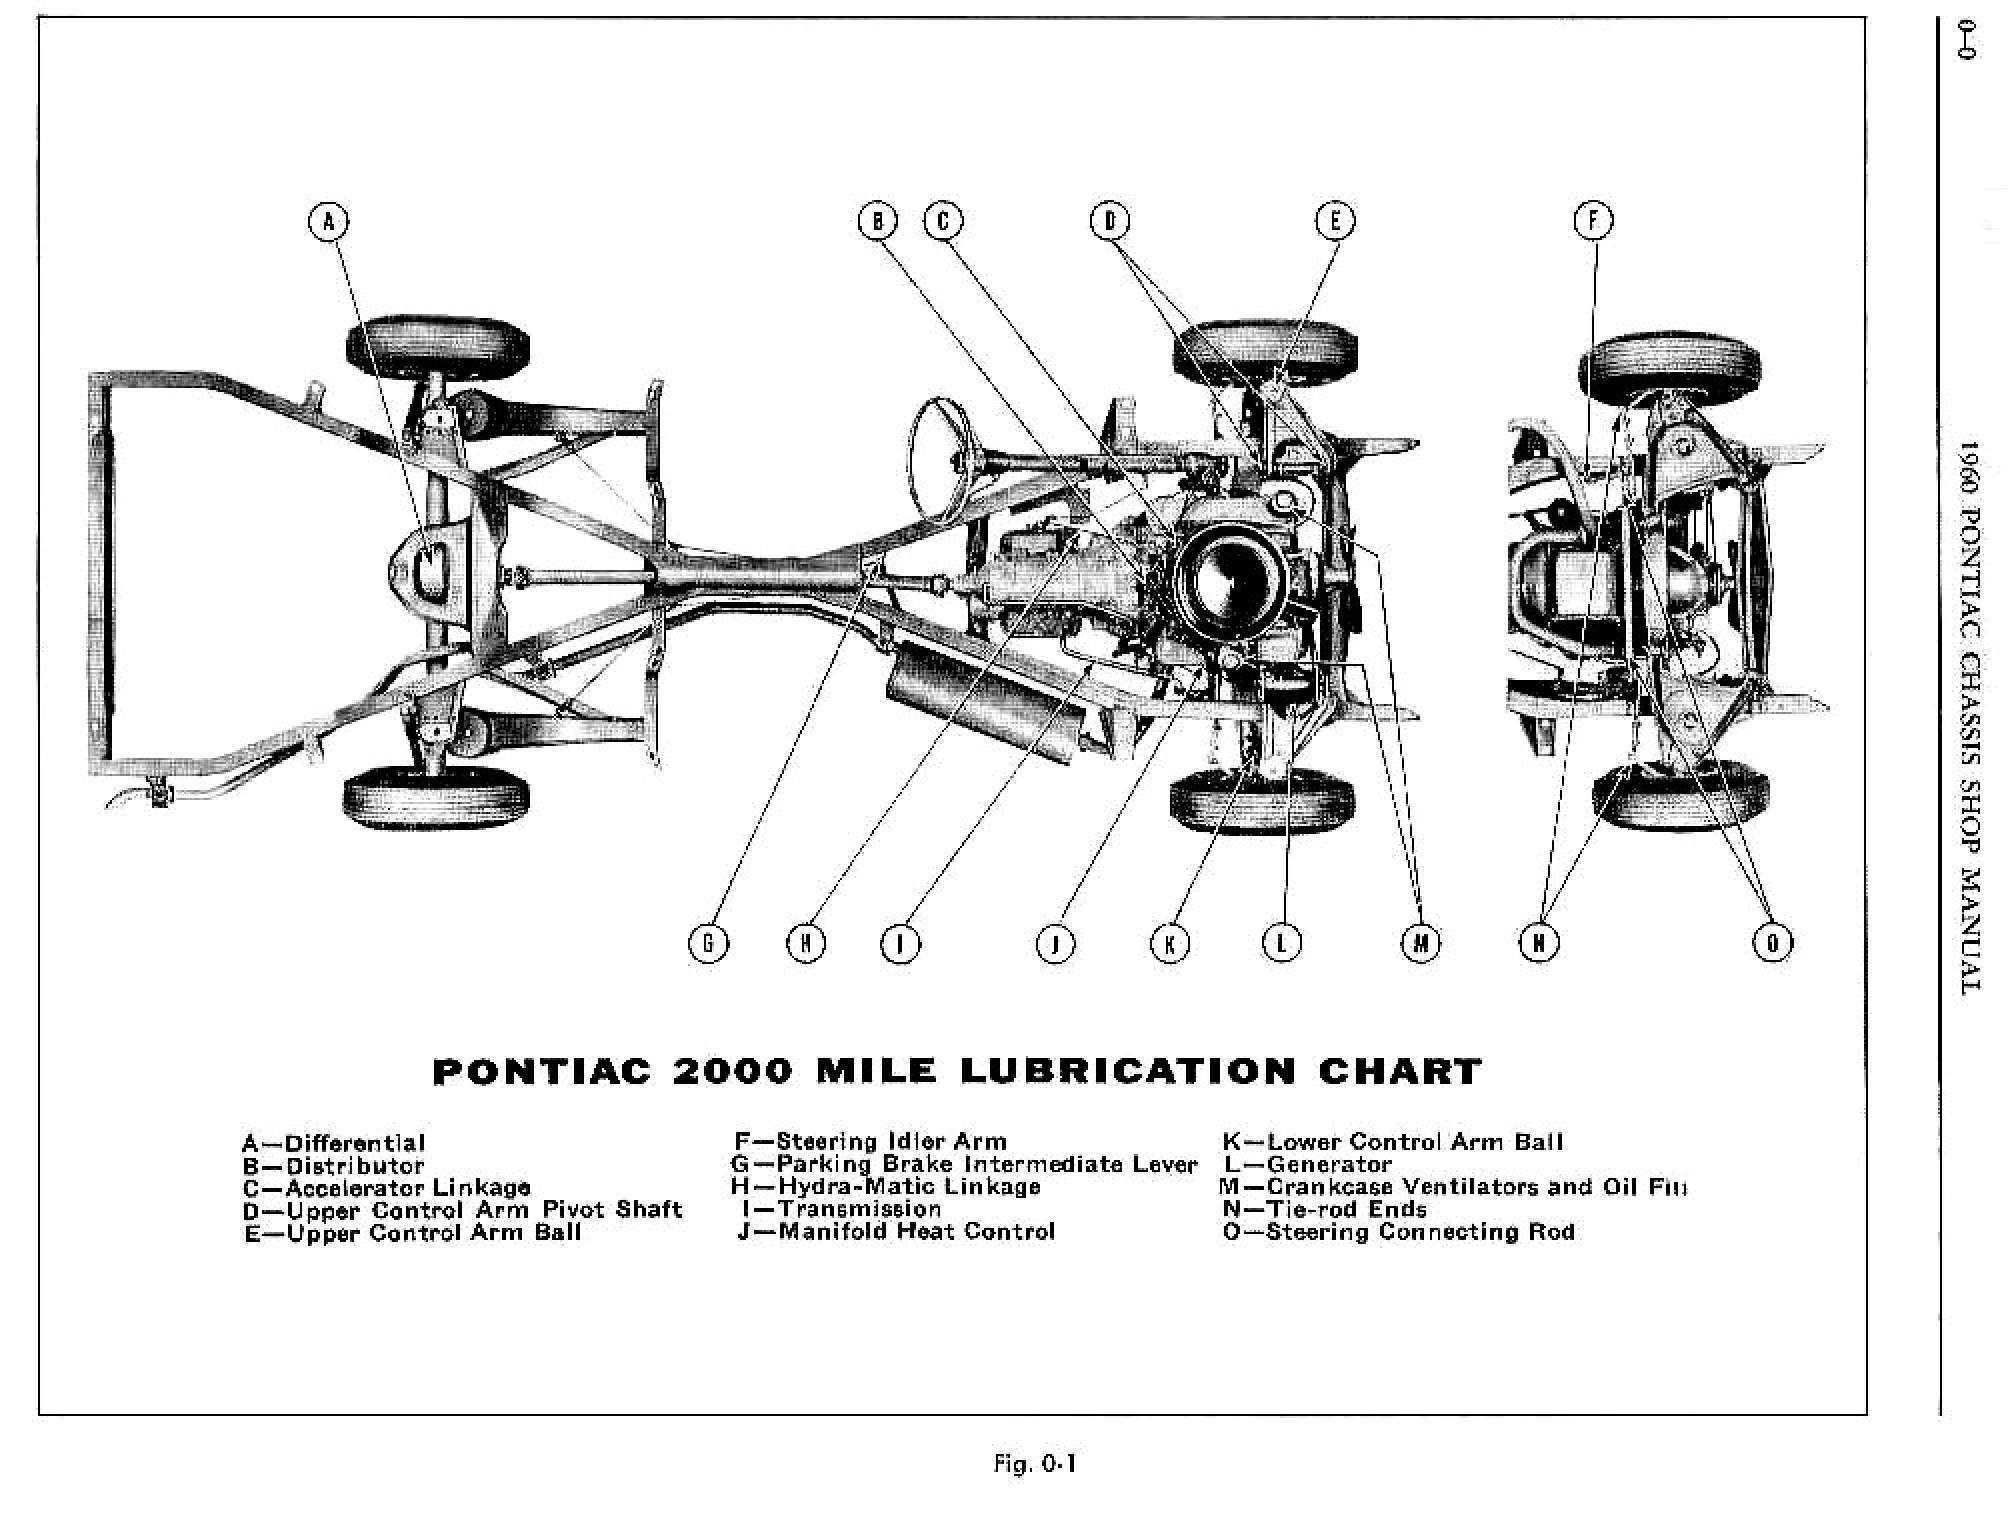 1960 Pontiac Shop Manual- Lubrication Page 1 of 7